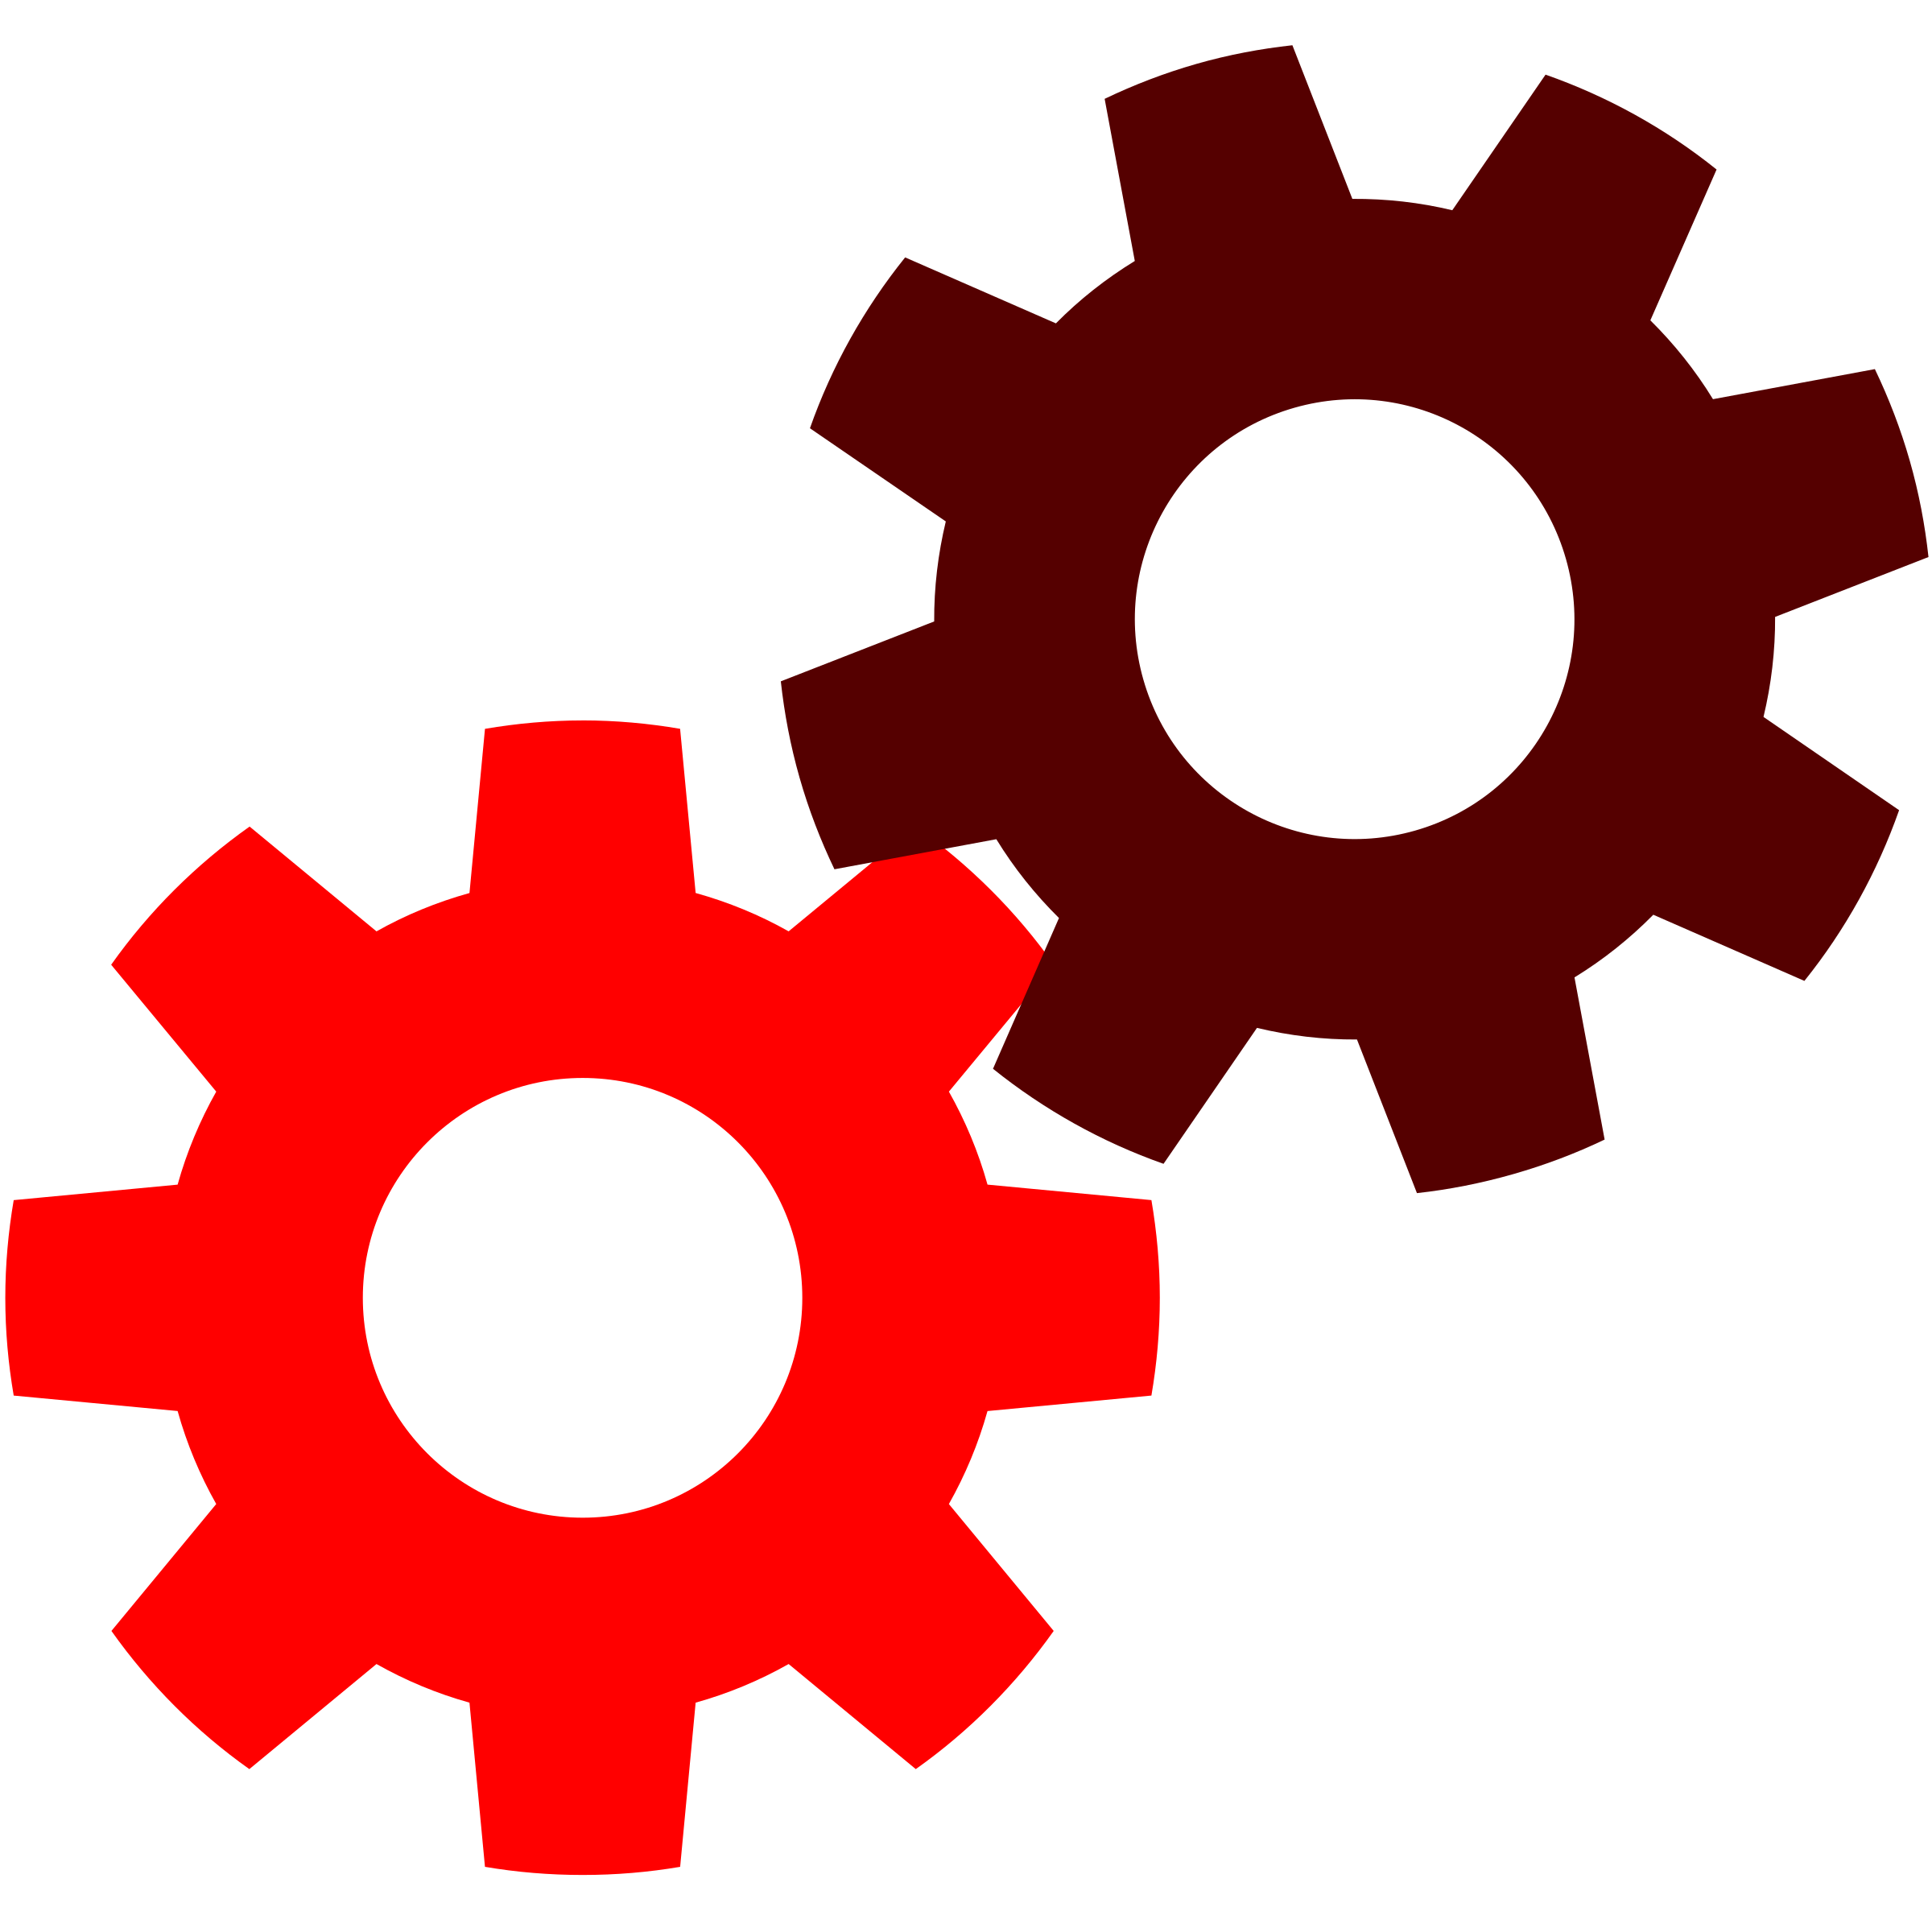 Gears png icon. In red icons free